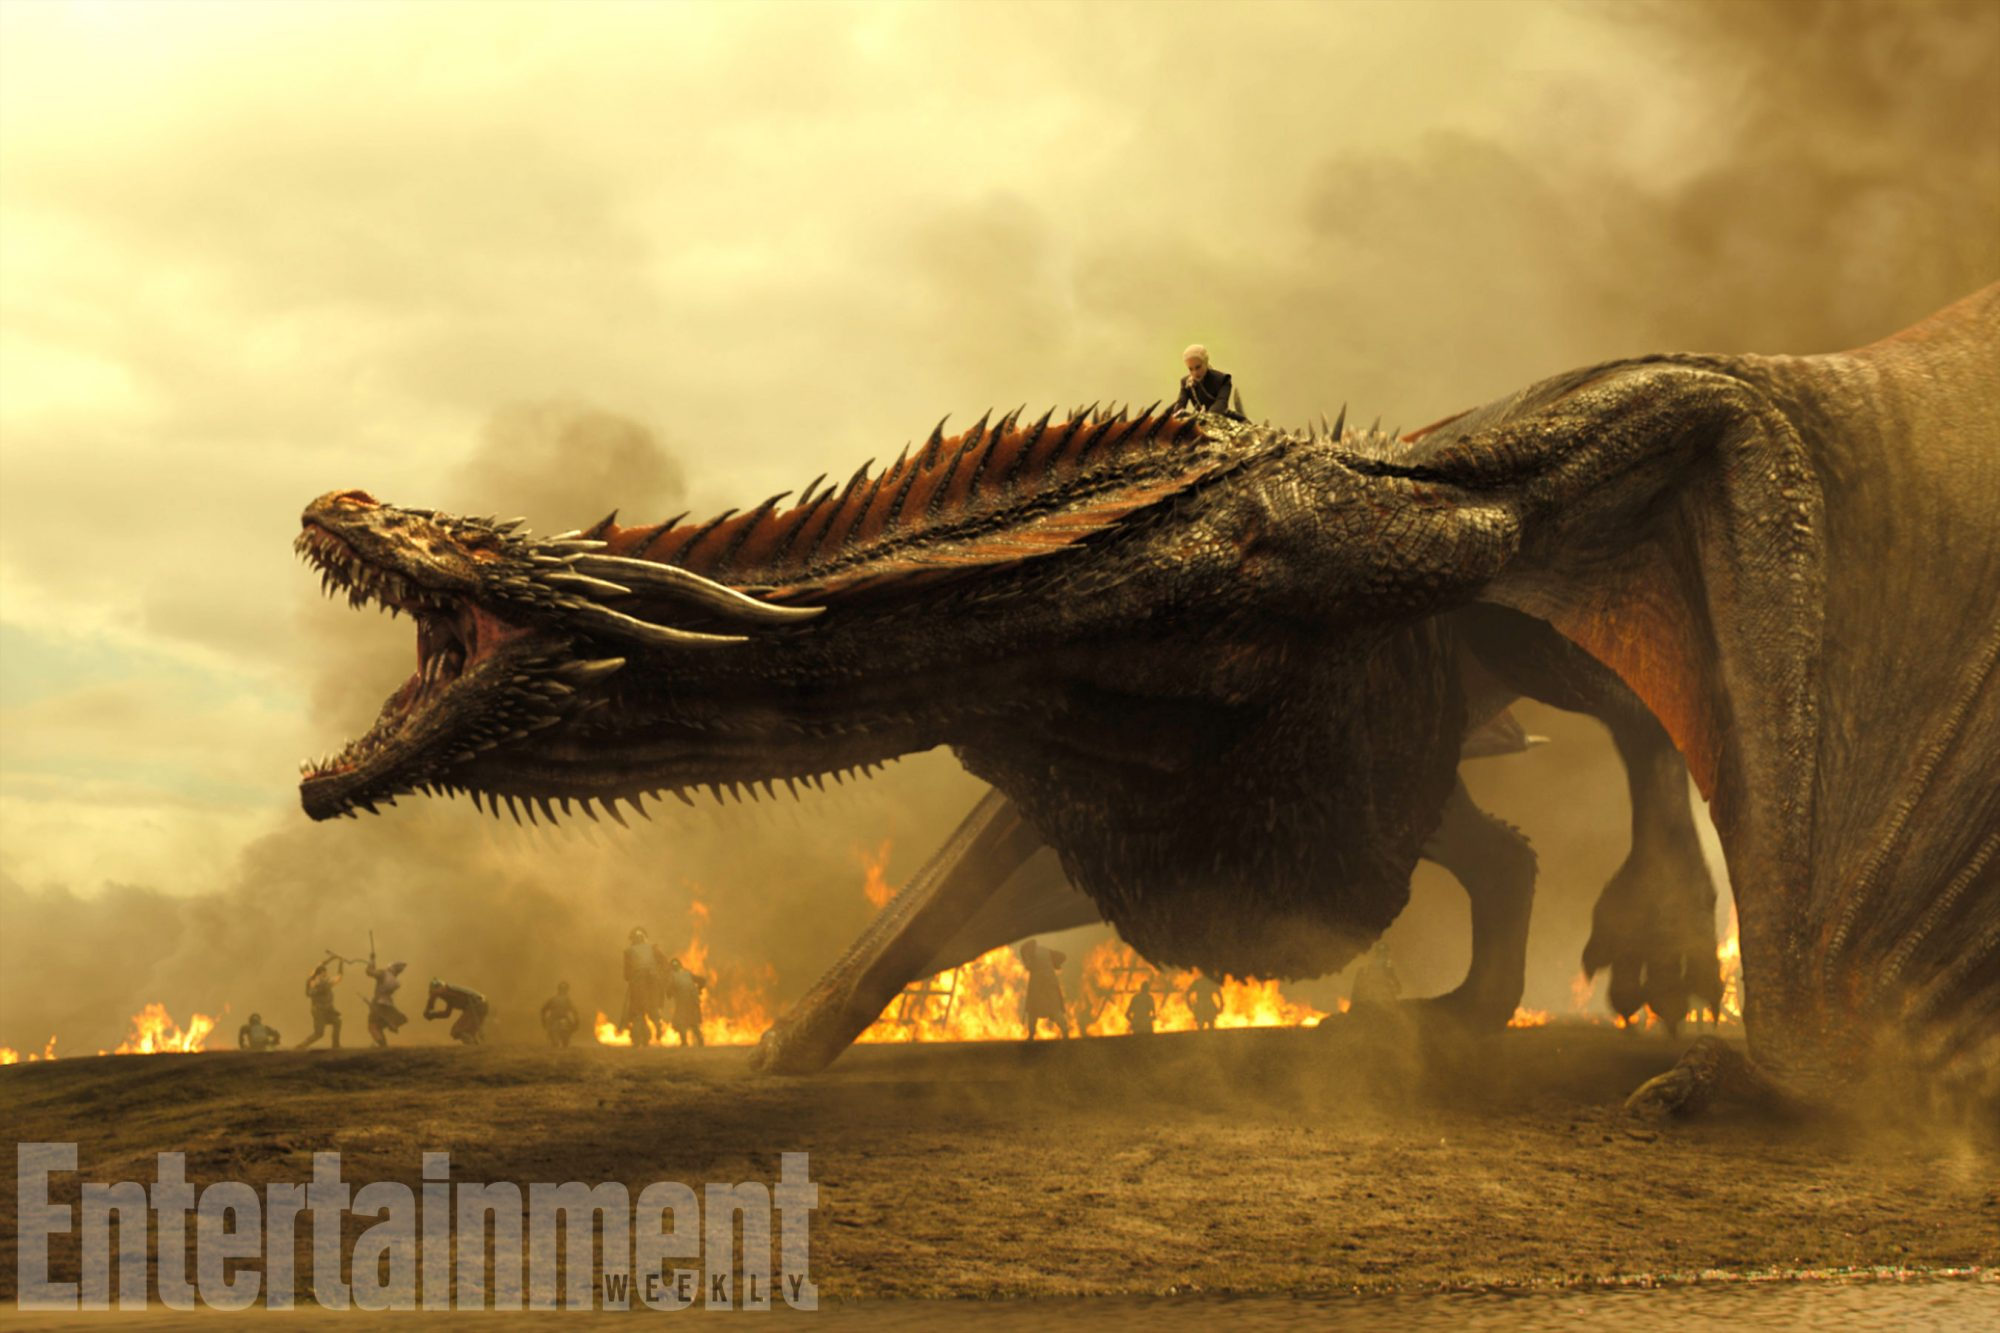 Dracarys! Daenerys' (Emilia Clarke) dragons are enormous in season 7 and ready for war in this jaw-dropping first-look battle image. More exclusive, new photos ahead.